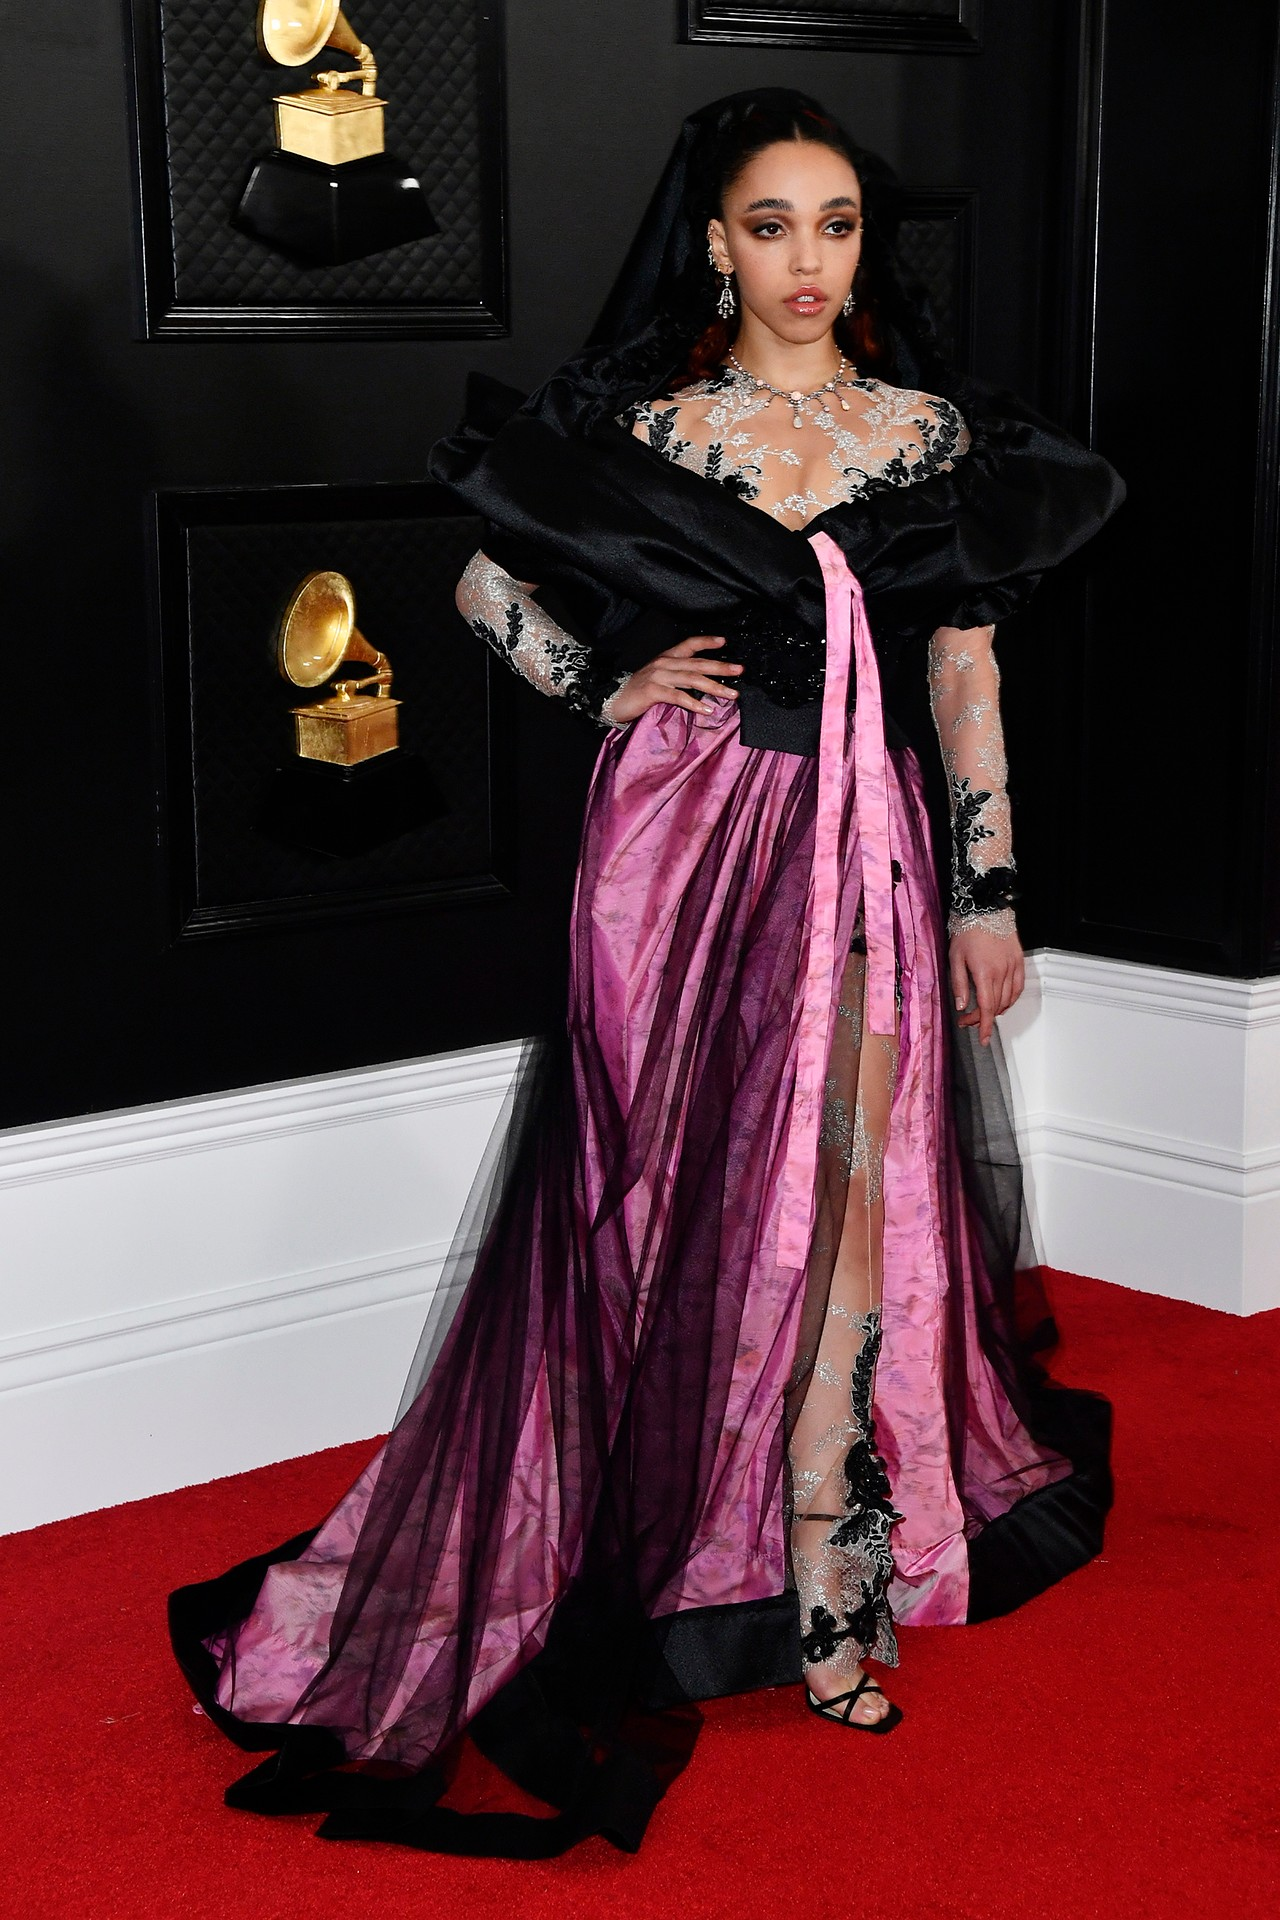 FKA Twigs at the Grammys 2020 (Photo credit: Getty Images)